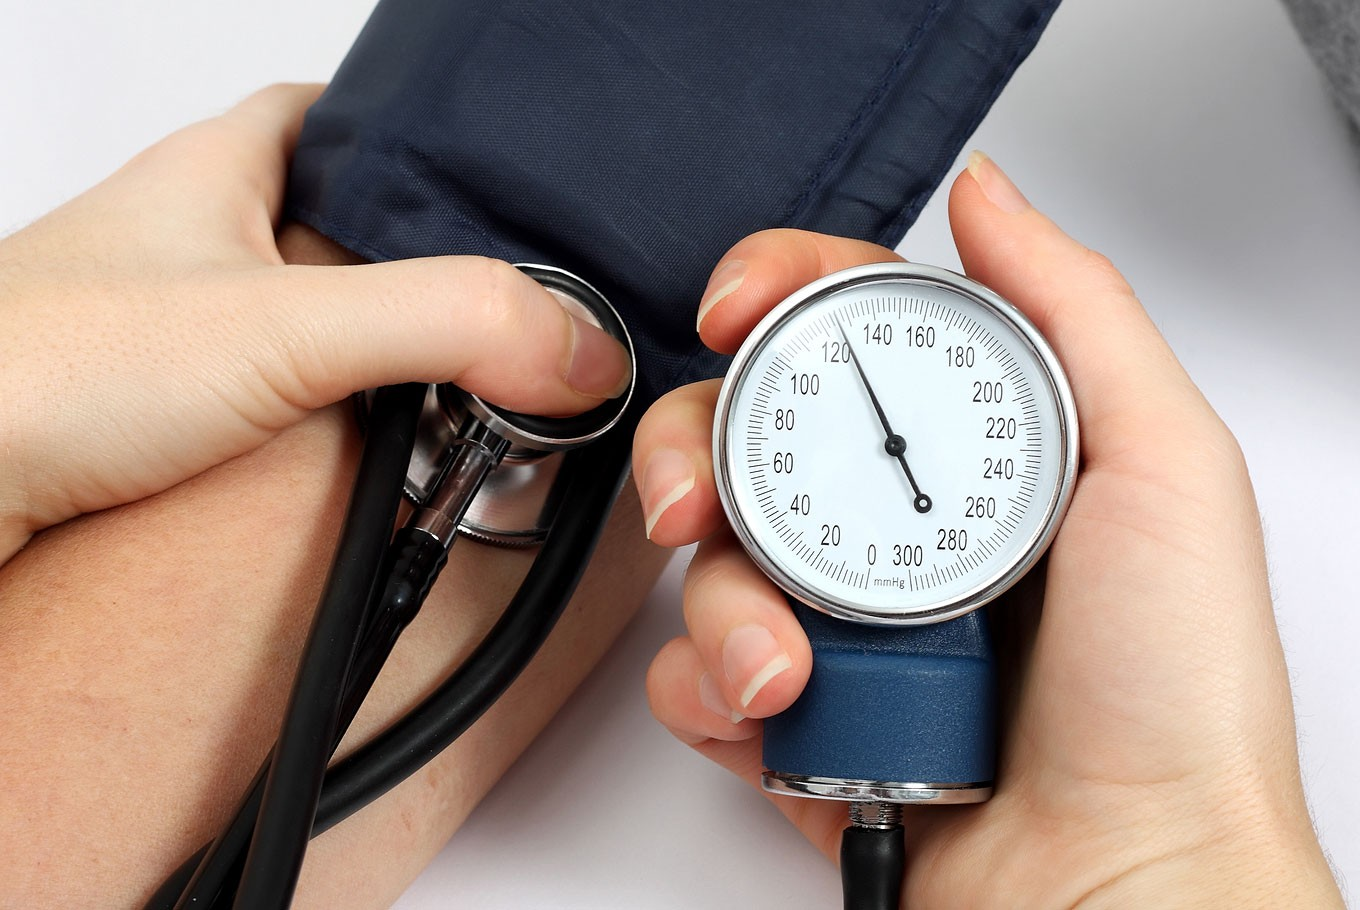 High blood pressure is redefined as 130, not 140: US guidelines